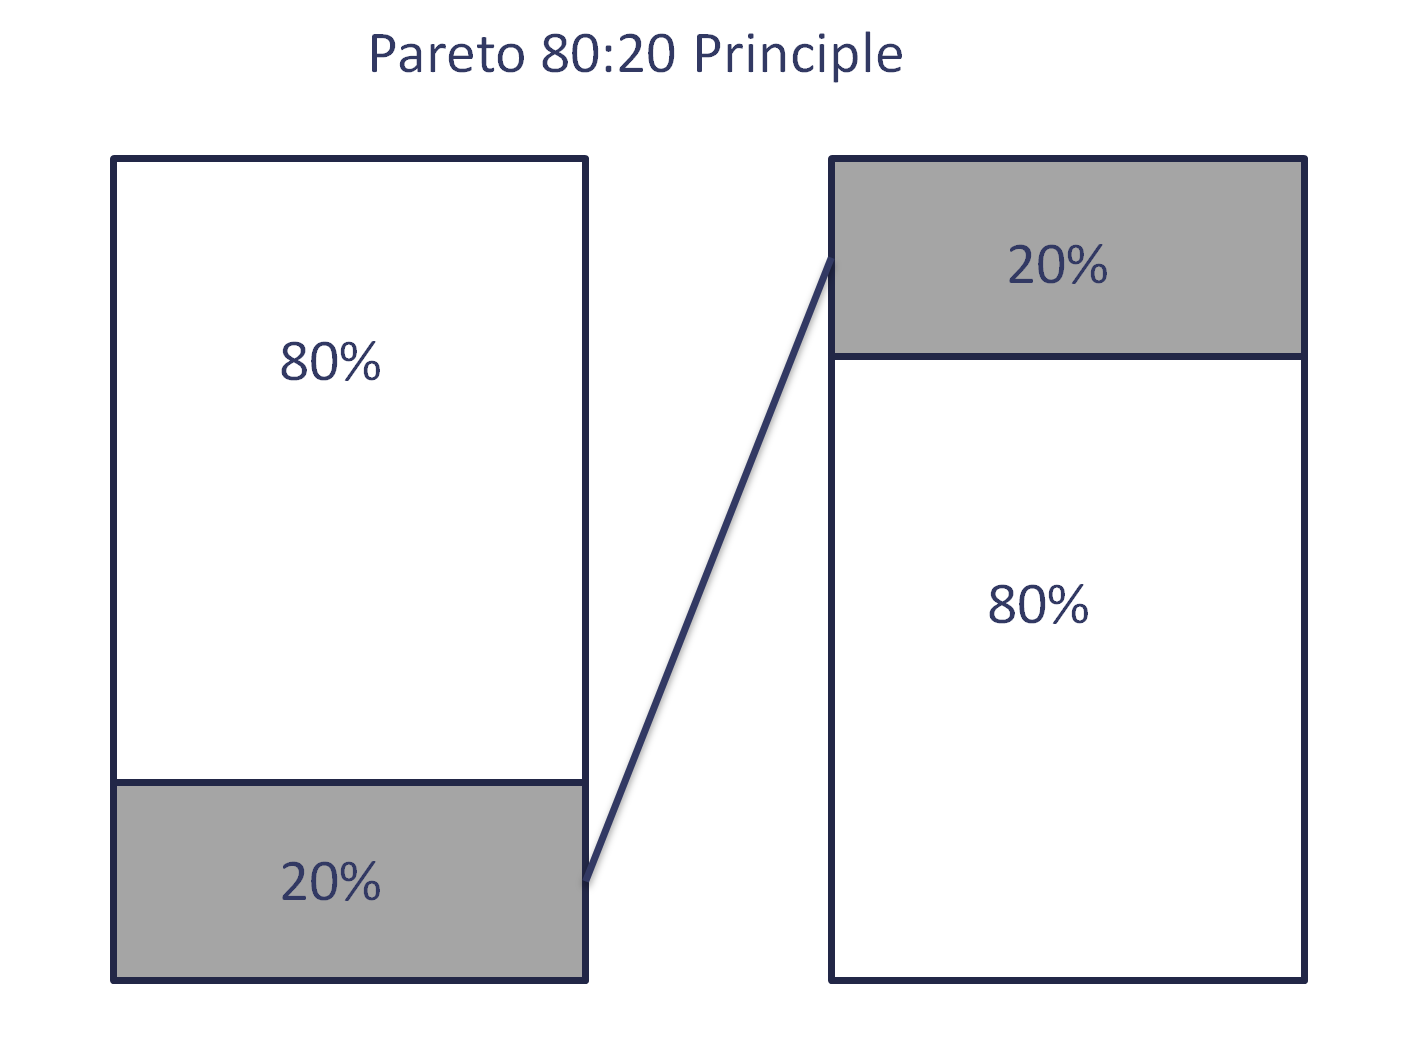 Image of the Pareto Principle